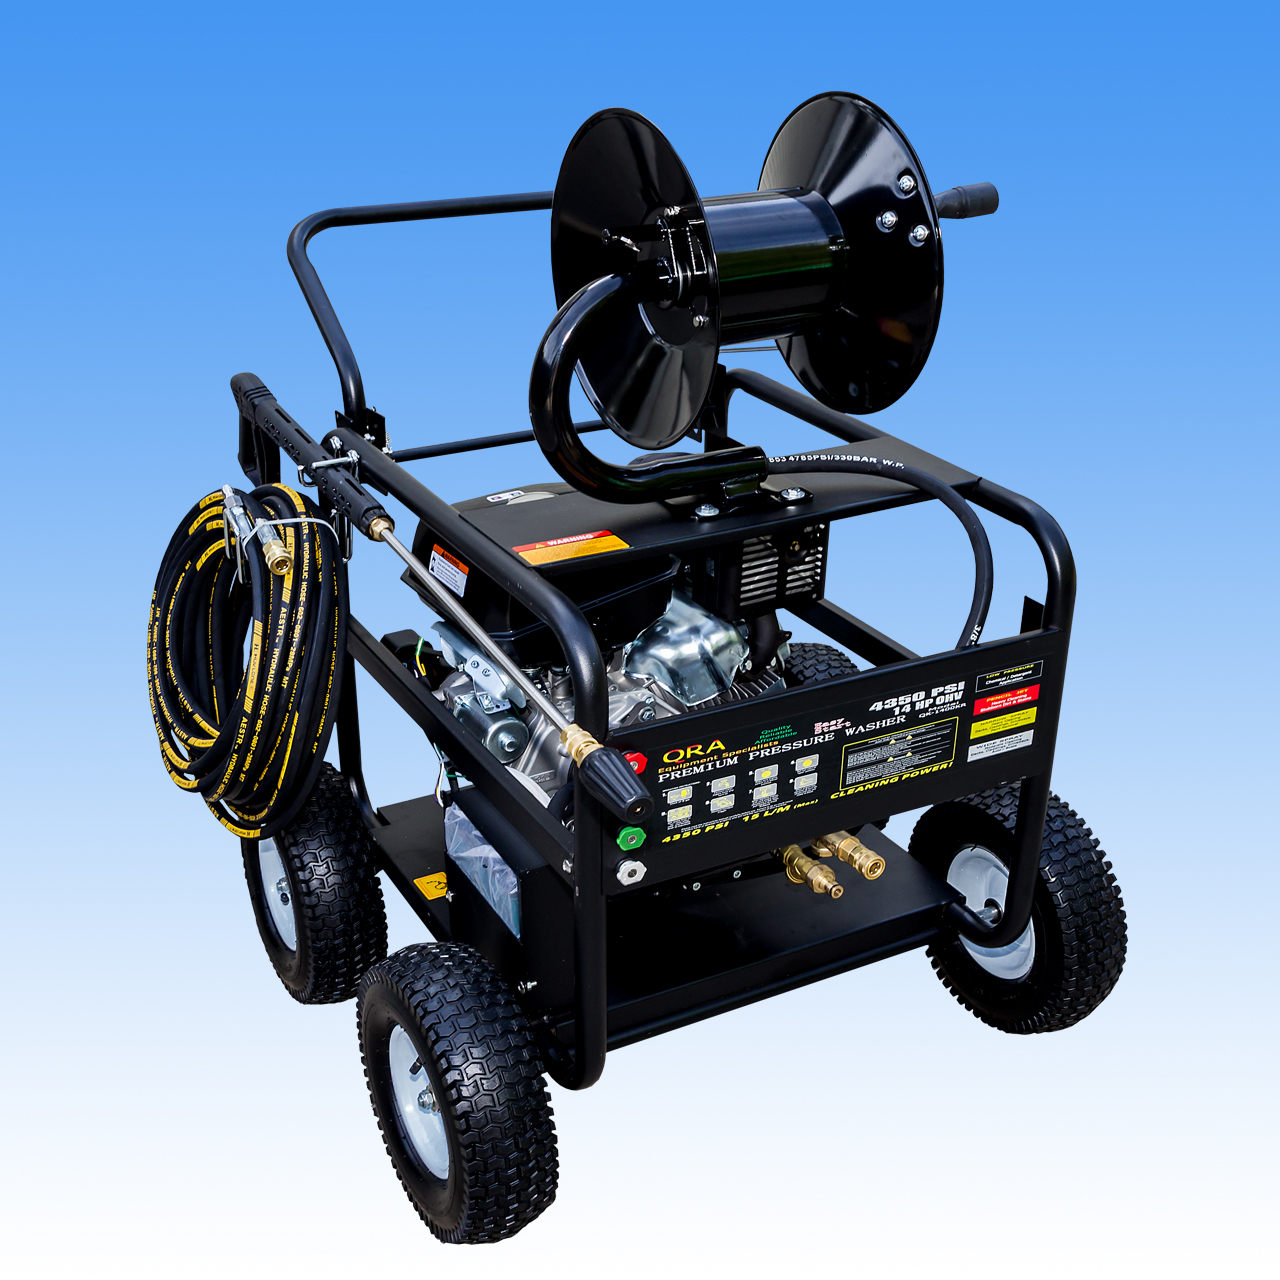 14hp Kohler High Pressure Washer Electric Start Engine with AR Pump And Full Bypass Unloader